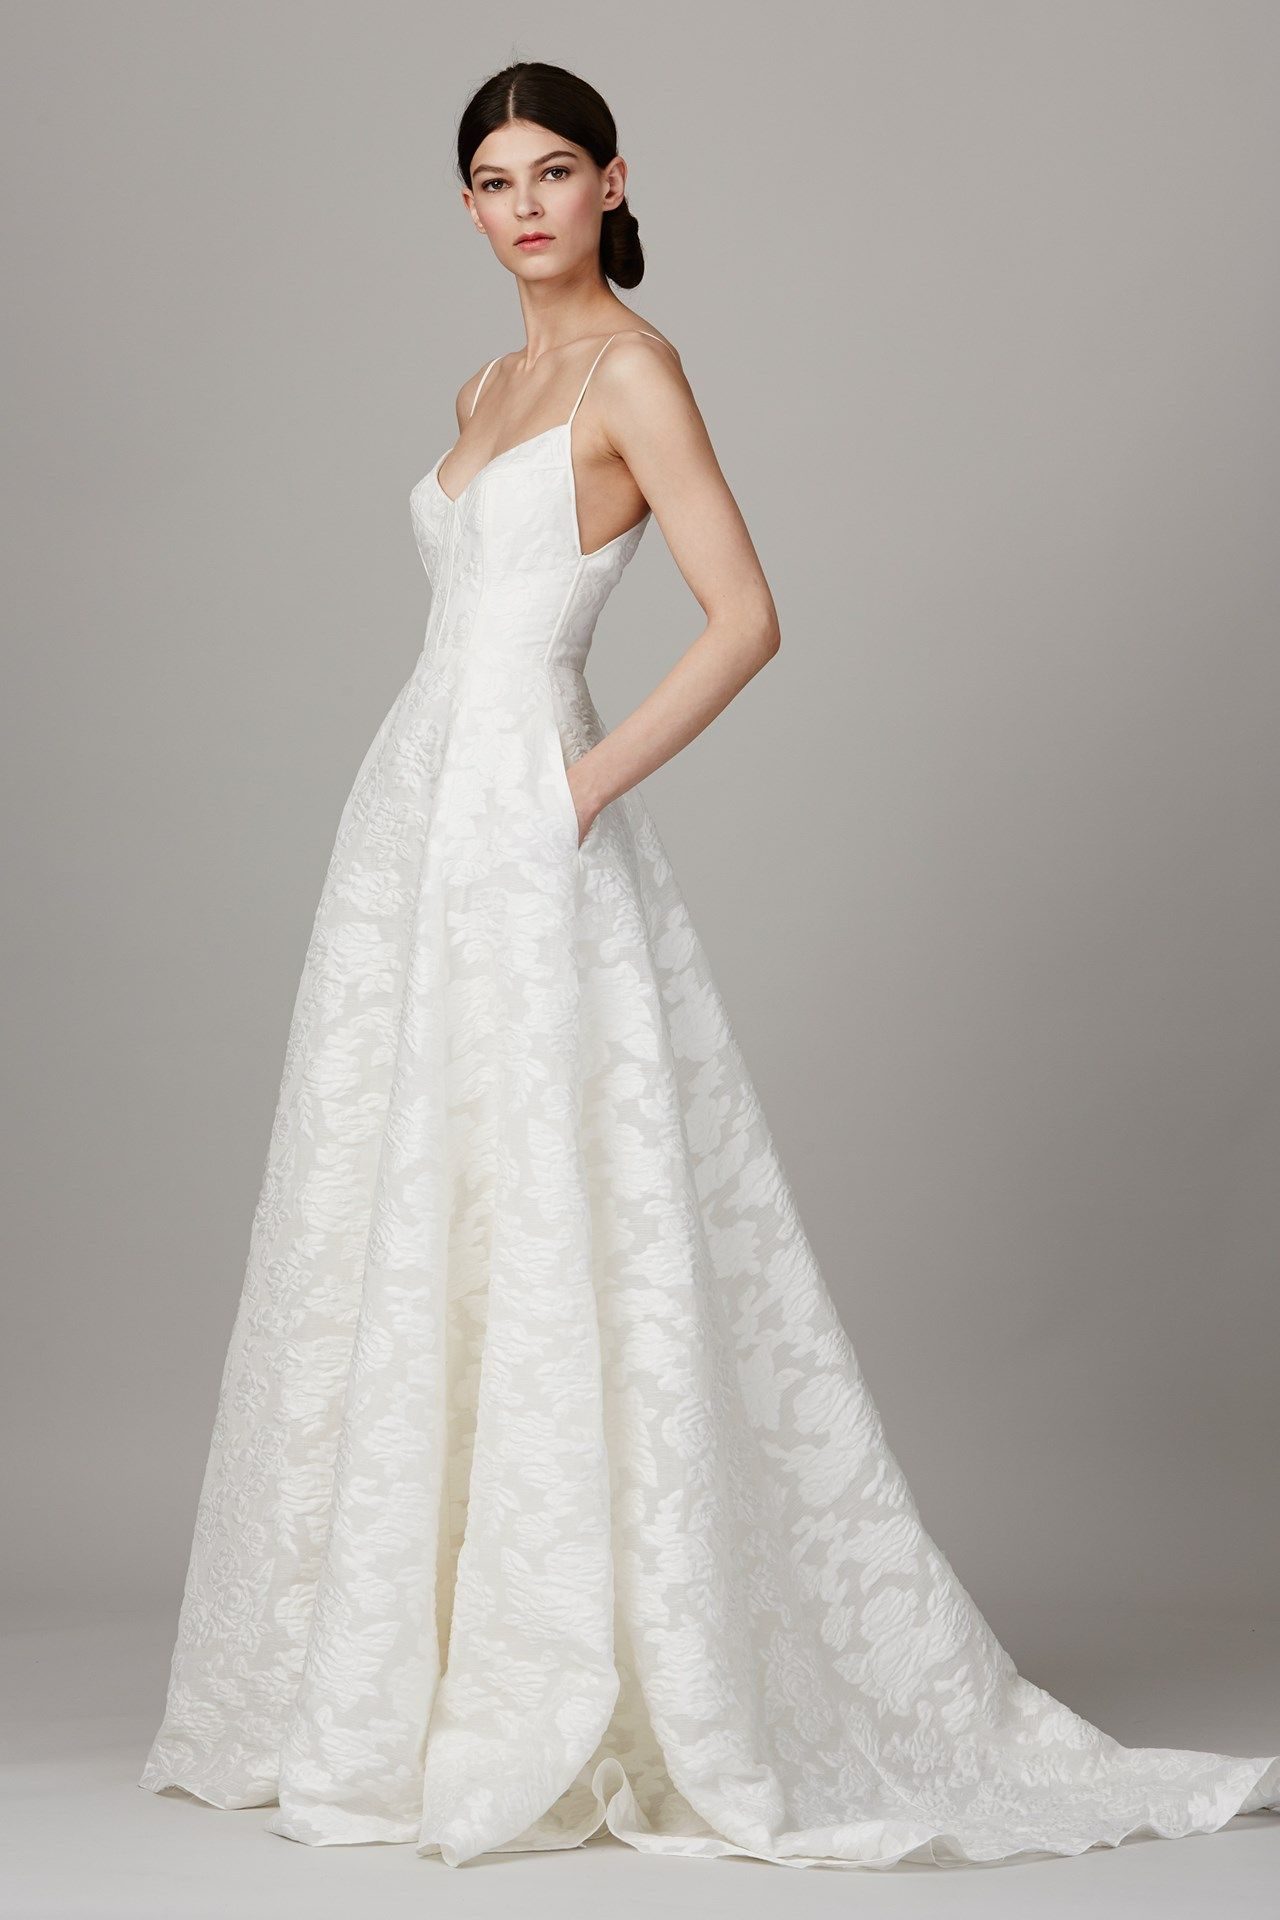 3ab97332d6b Lela Rose wedding dress - click through to see the full Lela Rose bridal  gown collection